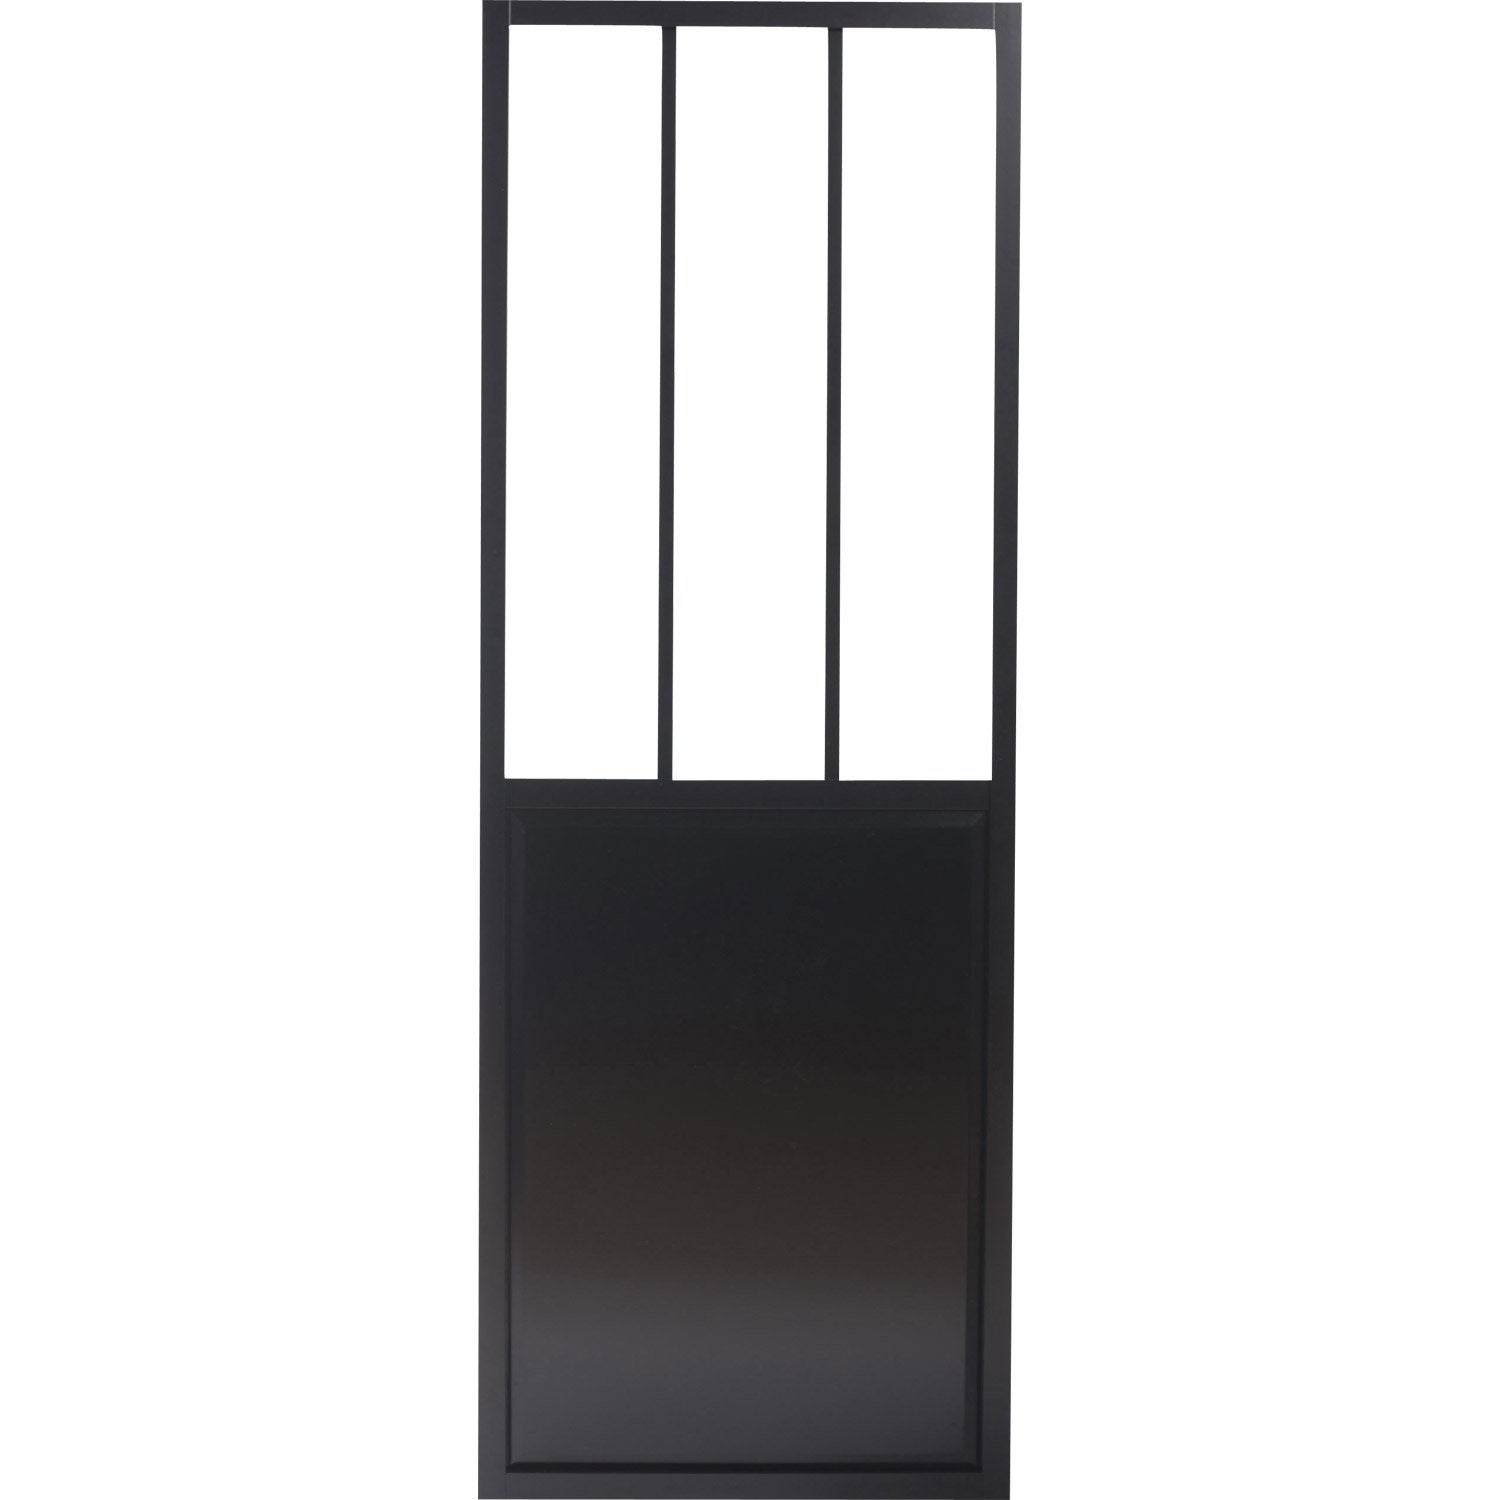 porte coulissante aluminium noir fonc verre tremp. Black Bedroom Furniture Sets. Home Design Ideas